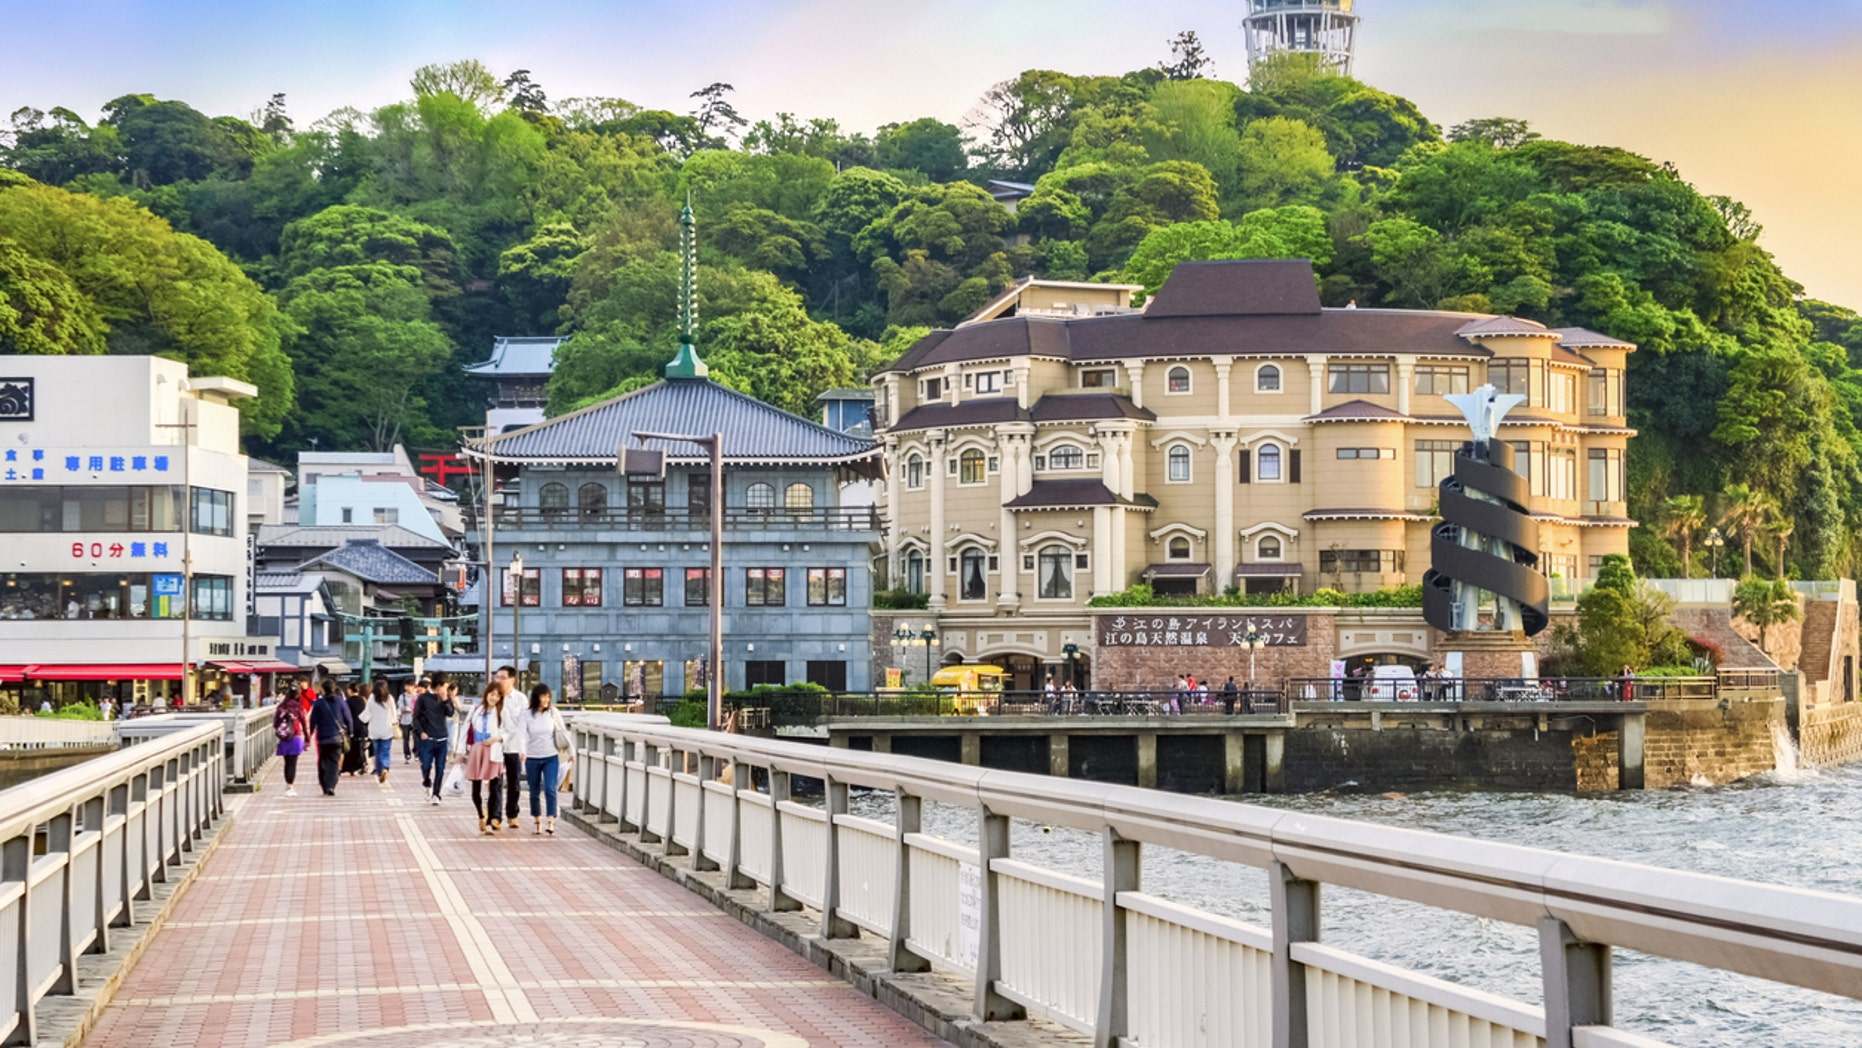 Kamakura, Japan, a seaside city in Kanagawa Prefecture known for surfing, Shinto shrines, Buddhist temples, and the Great Buddha of Kamakura is now requesting tourists and residents to refrain from eating while walking around the city.